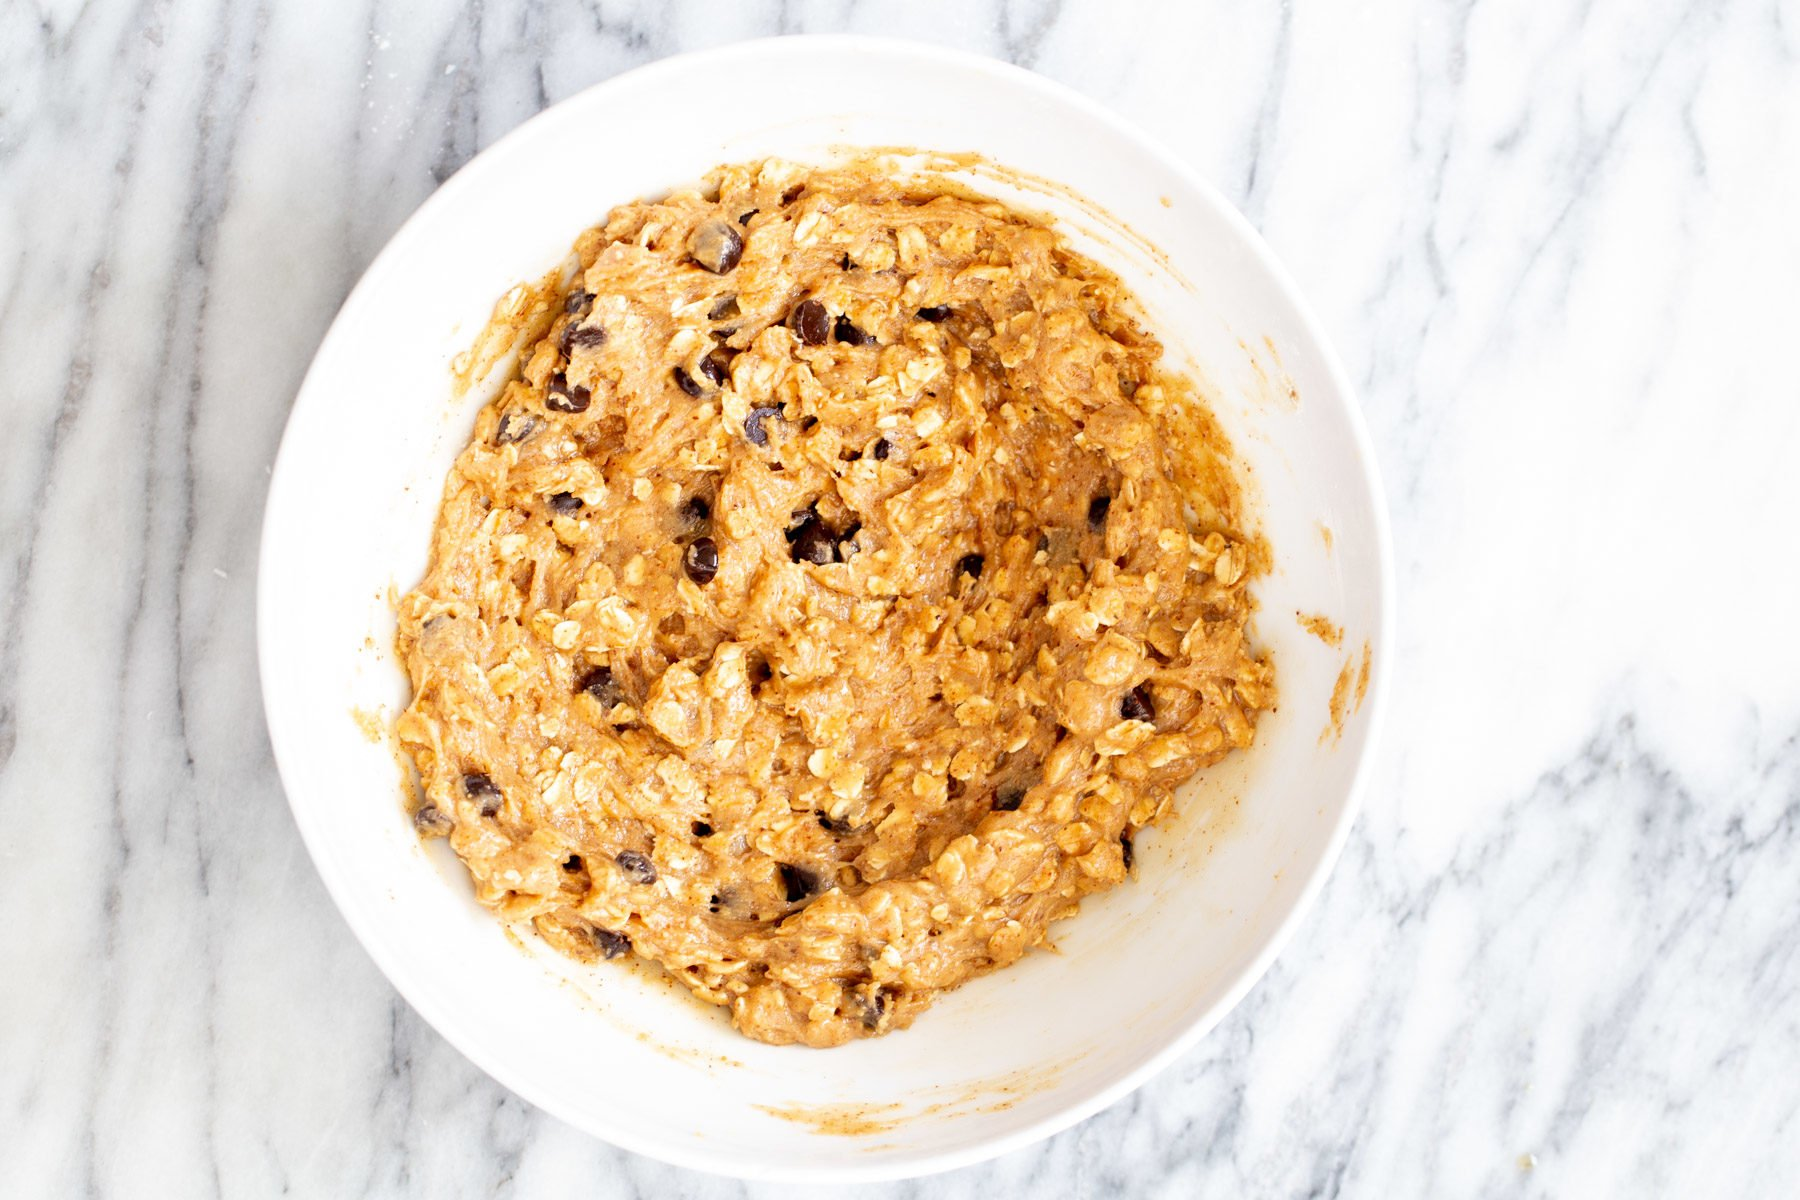 vegan carmelita oatmeal batter with chocolate chips in a mixing bowl